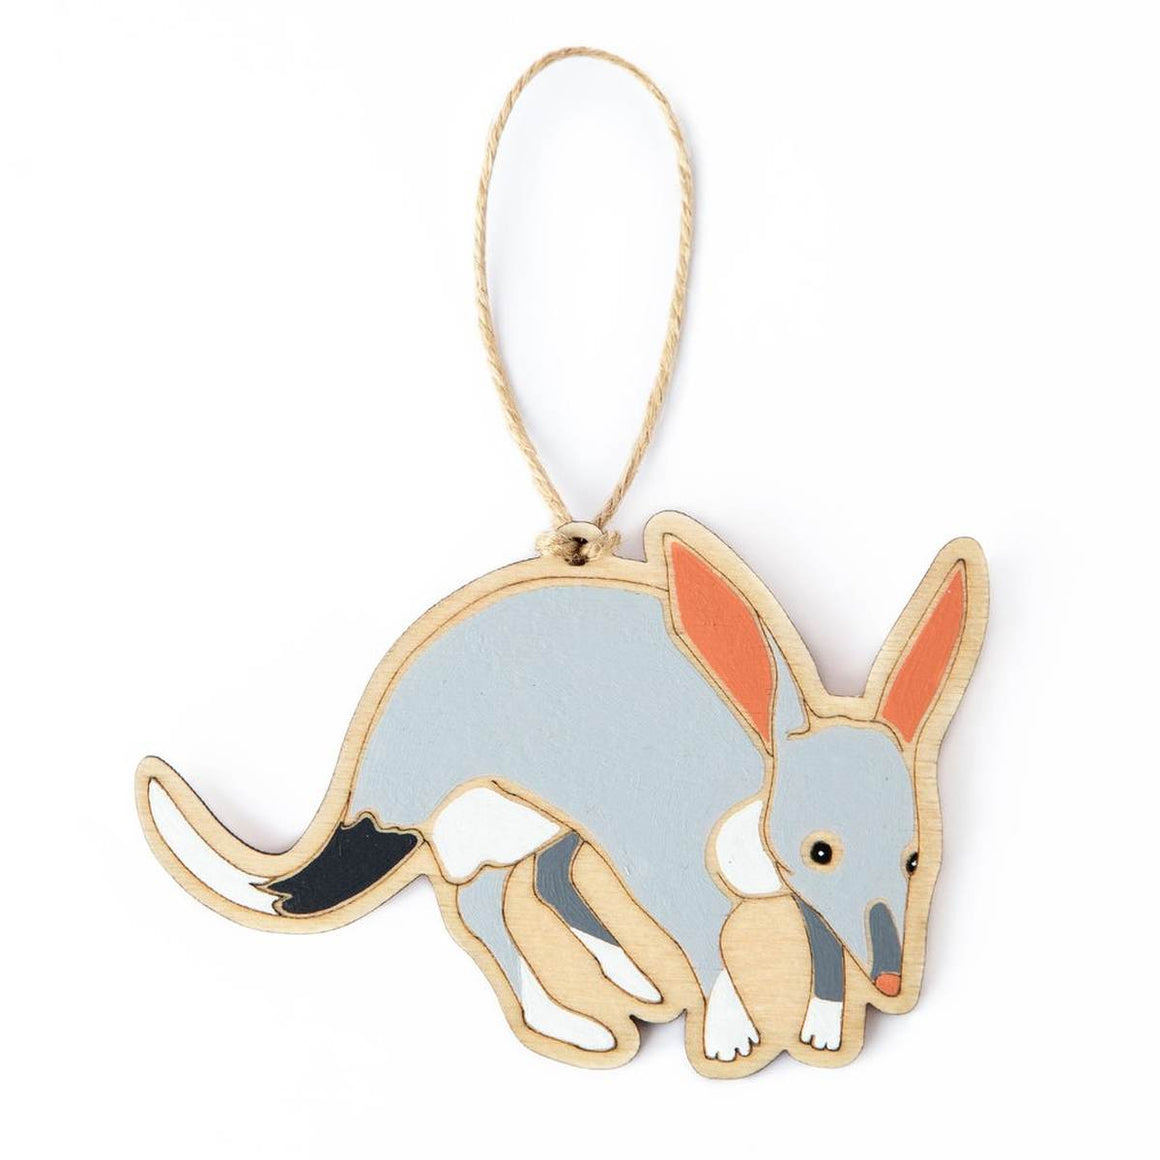 A hanging ornament in the form of a Greater Bilby. Laser Etched flat wood is adorned with Black, White, Grey and Peach hand painting. A Jute string is attached